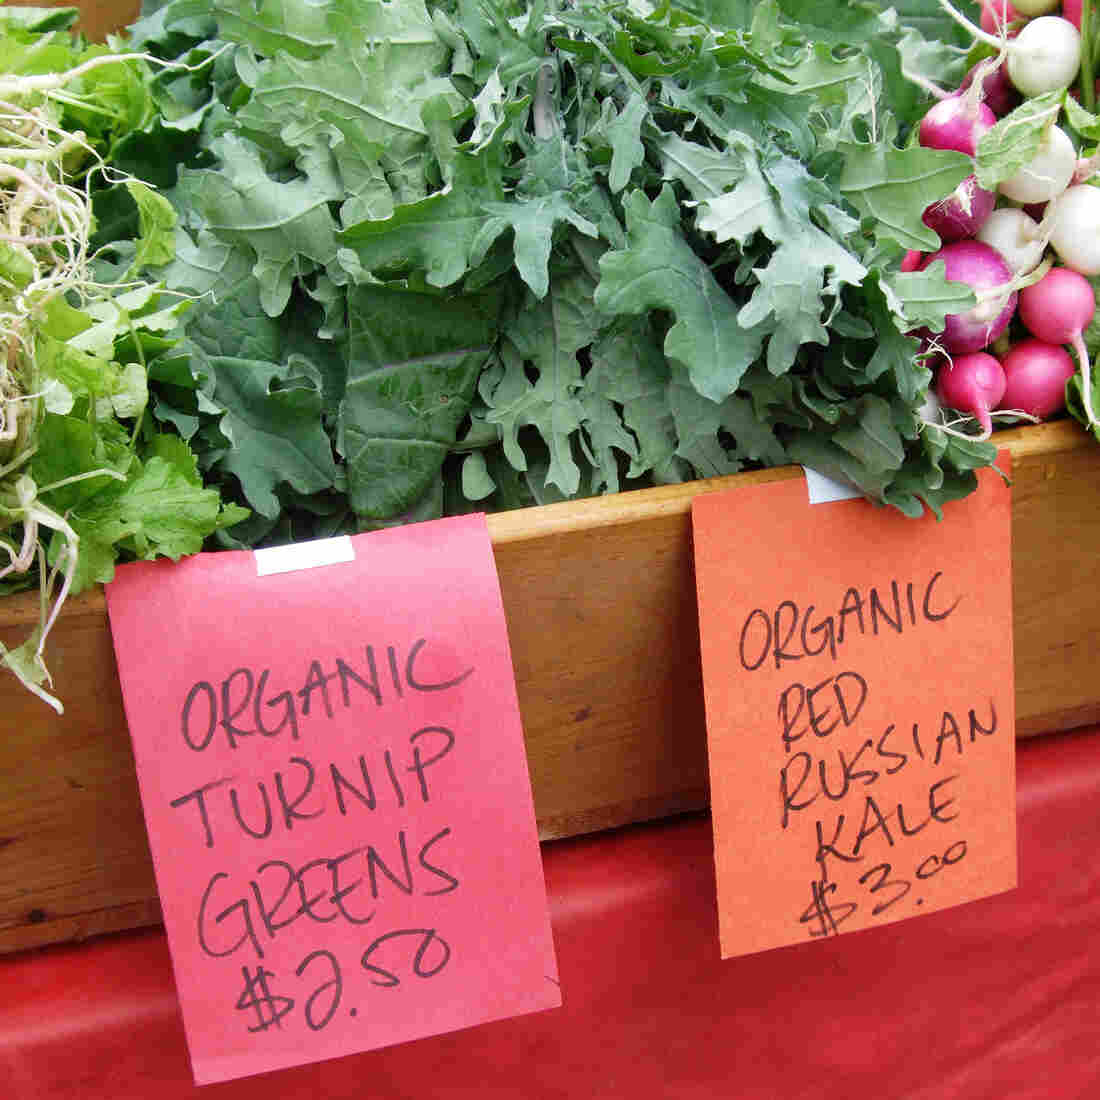 Are Organic Vegetables More Nutritious After All?